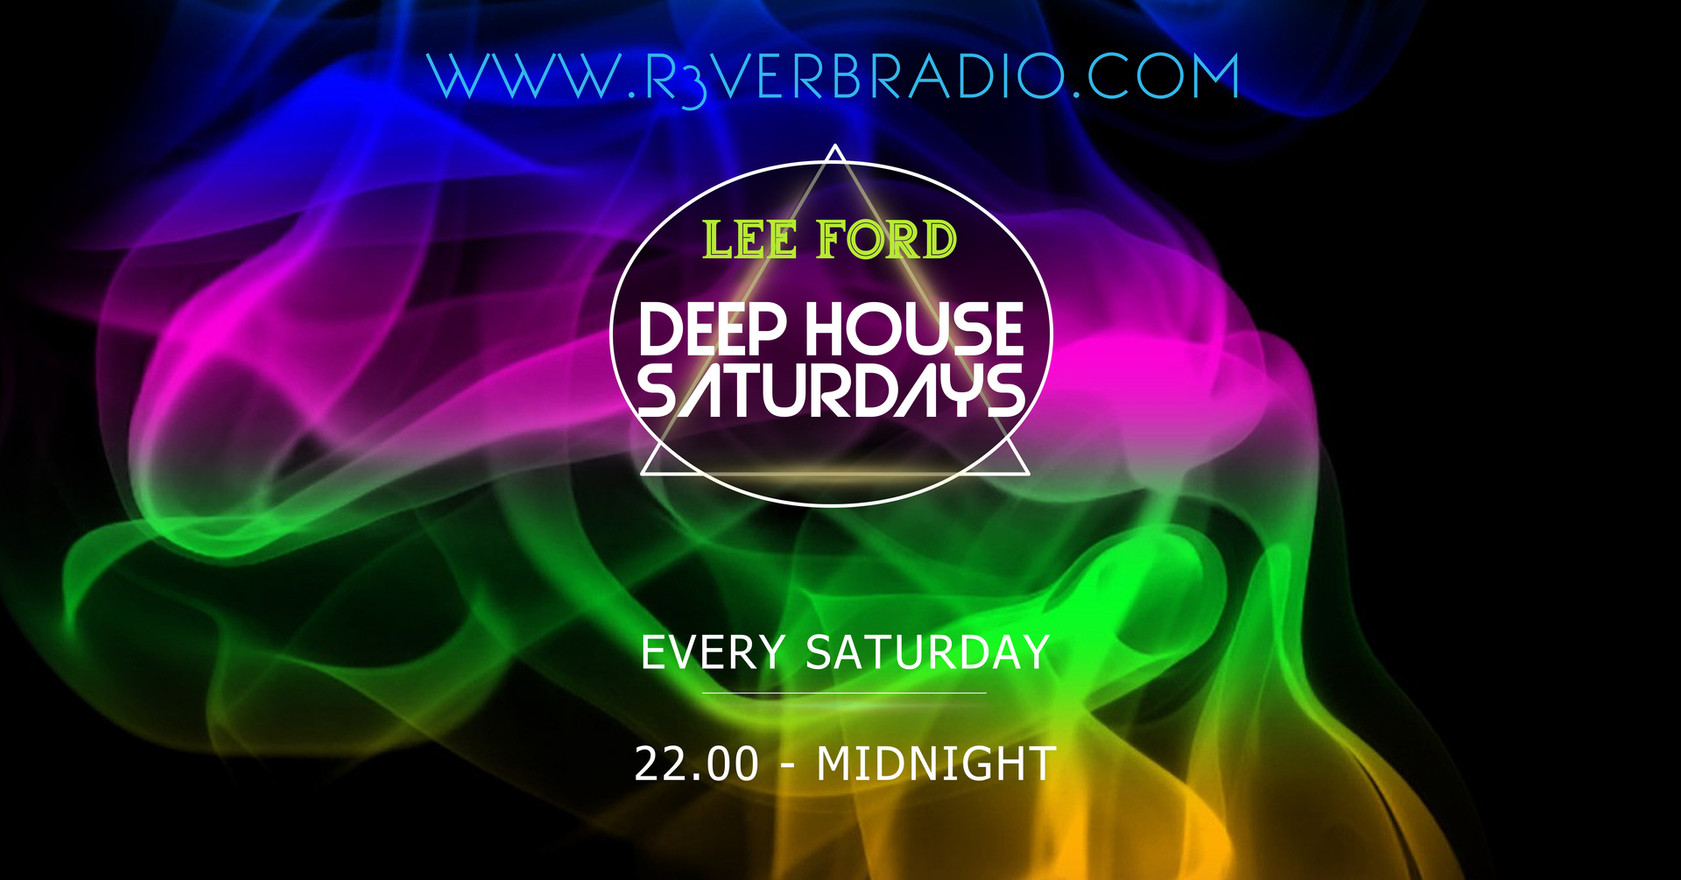 R3VERBRADIO - LEE FORD SHOW.jpg